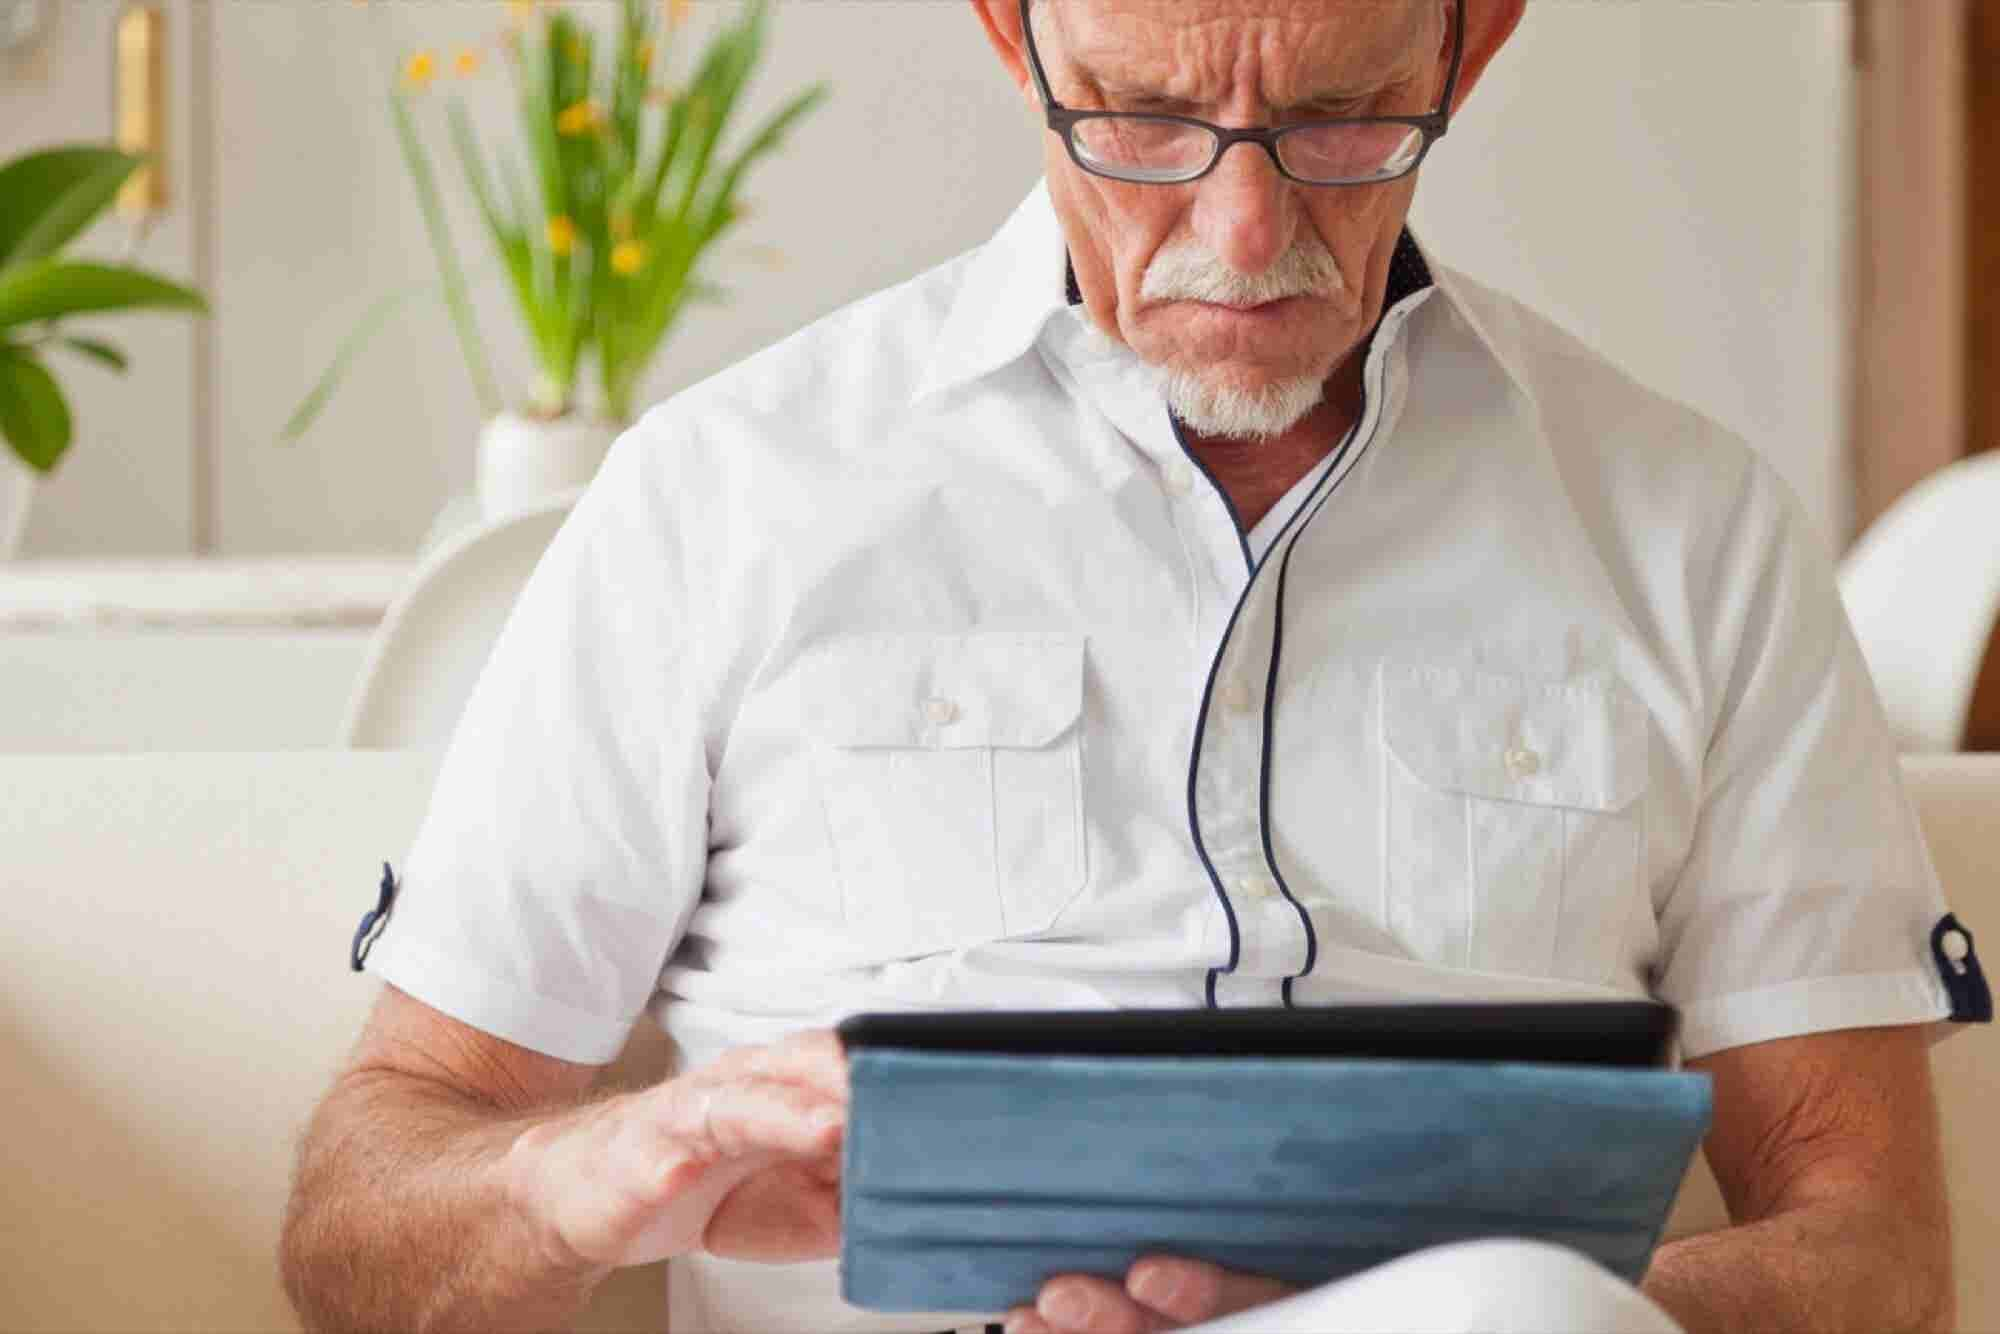 How Senior Citizens Can Use Technology to Ensure Safety